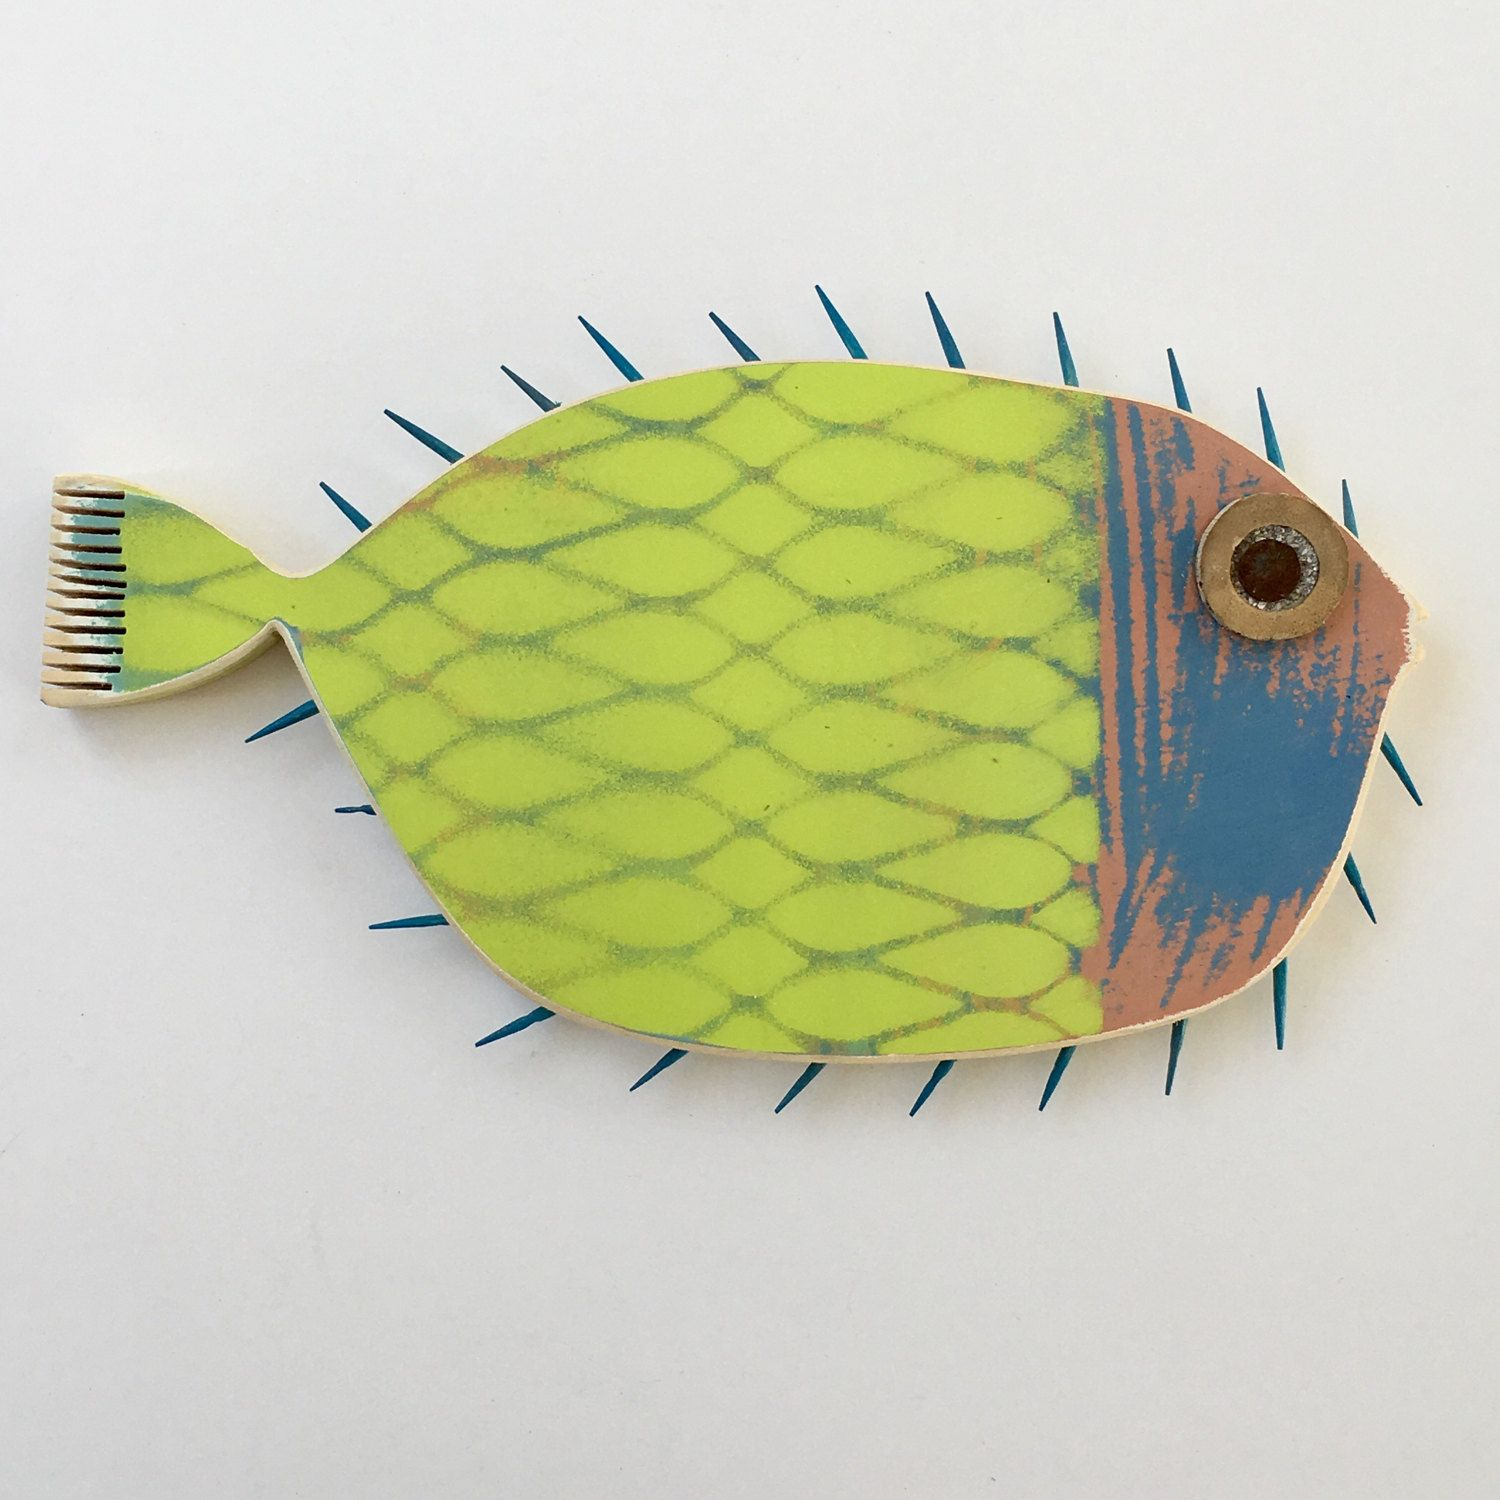 Funky Fish Wall Decor Photo - Art & Wall Decor - hecatalog.info